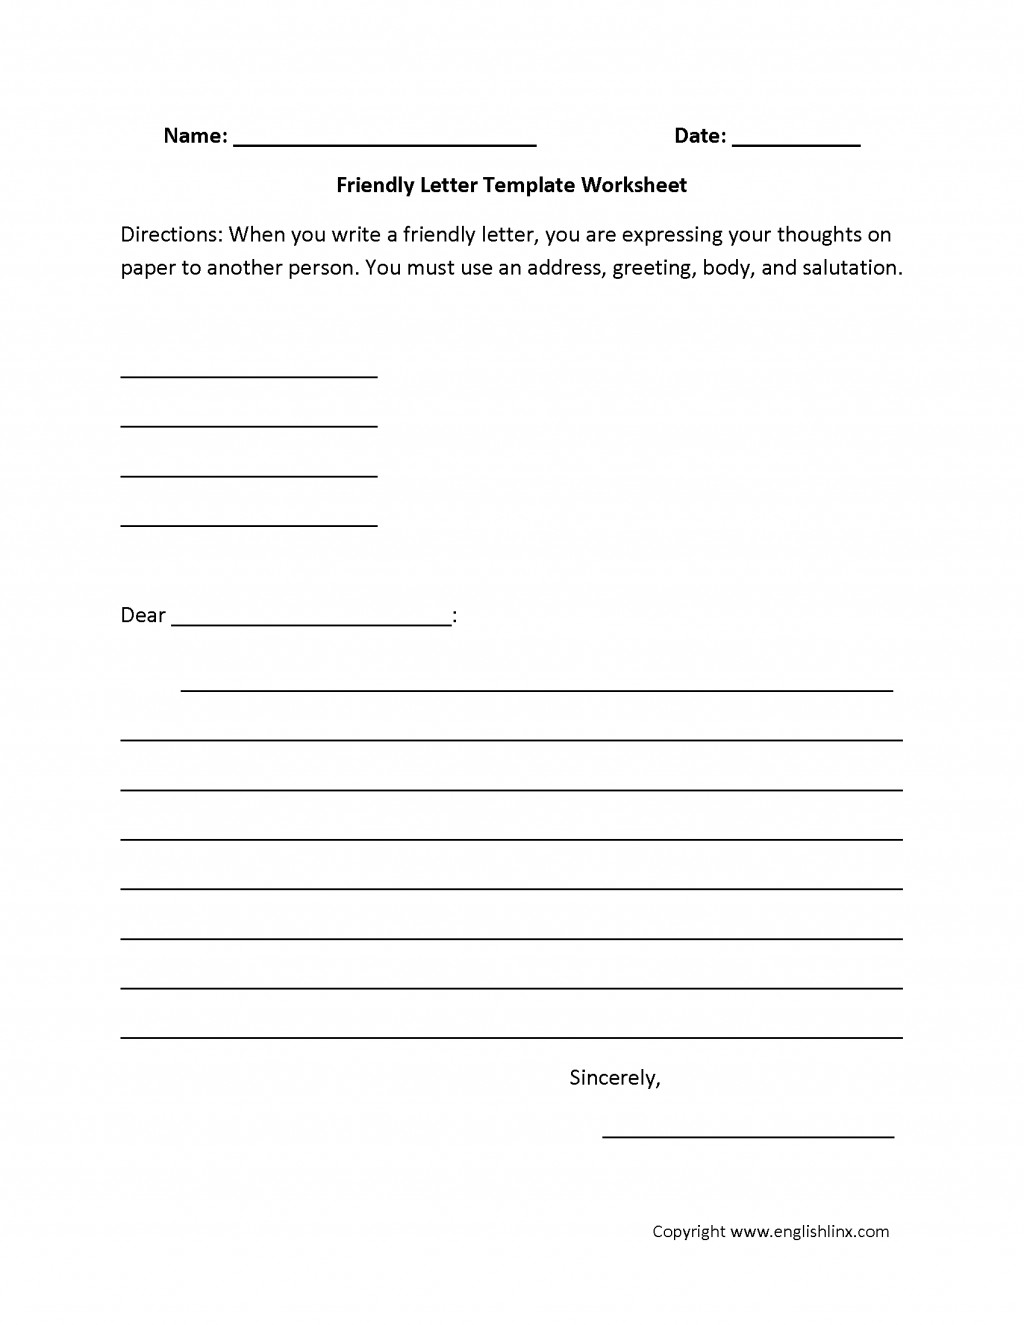 011 Essay Example About Friendly Stupendous On Eco Diwali In Hindi Environmentally Letter Large